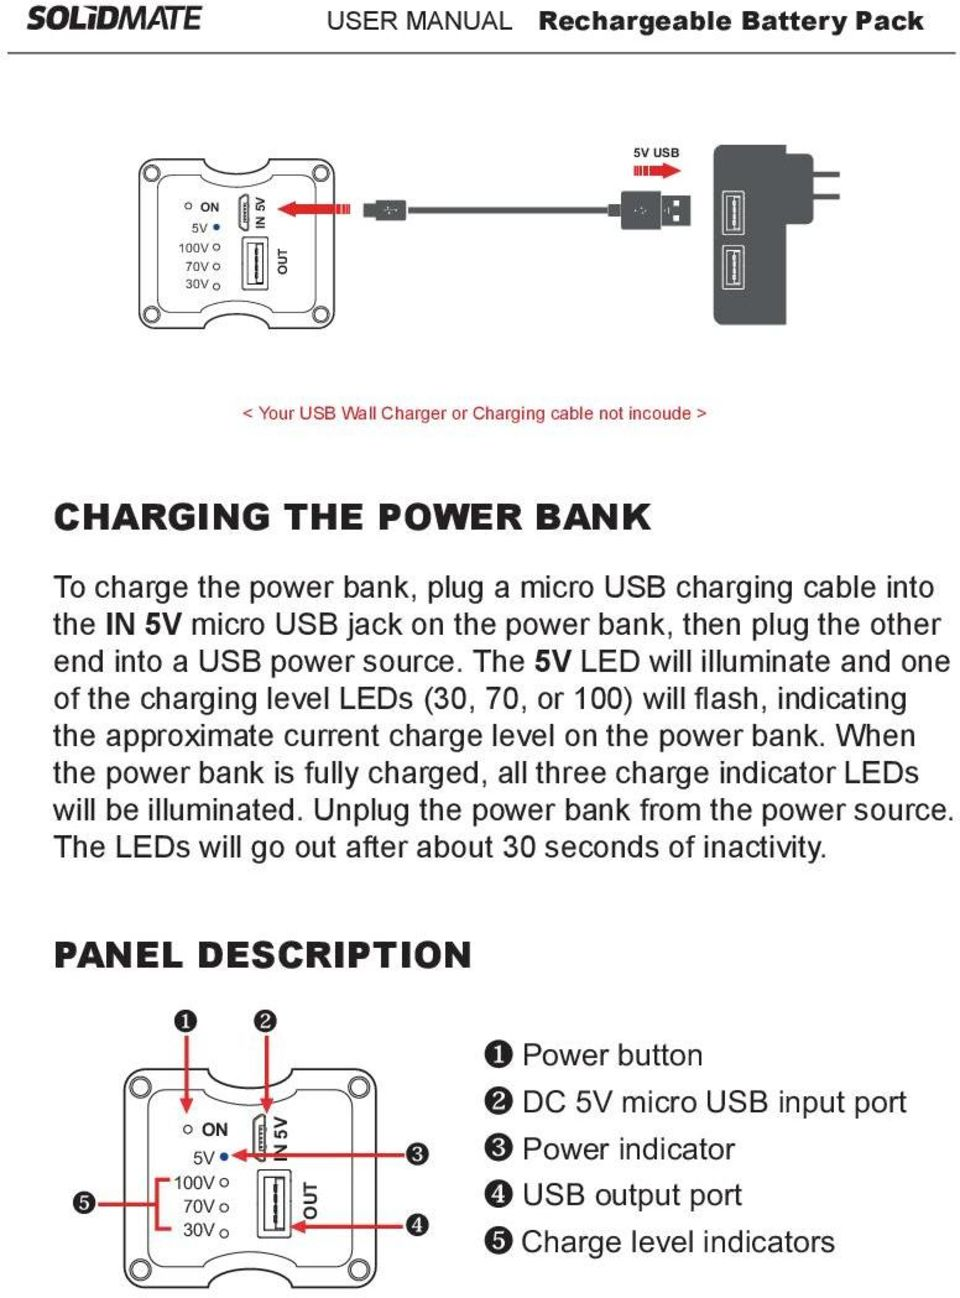 The 5V LED will illuminate and one of the charging level LEDs (30, 70, or 100) will flash, indicating the approximate current charge level on the power bank.